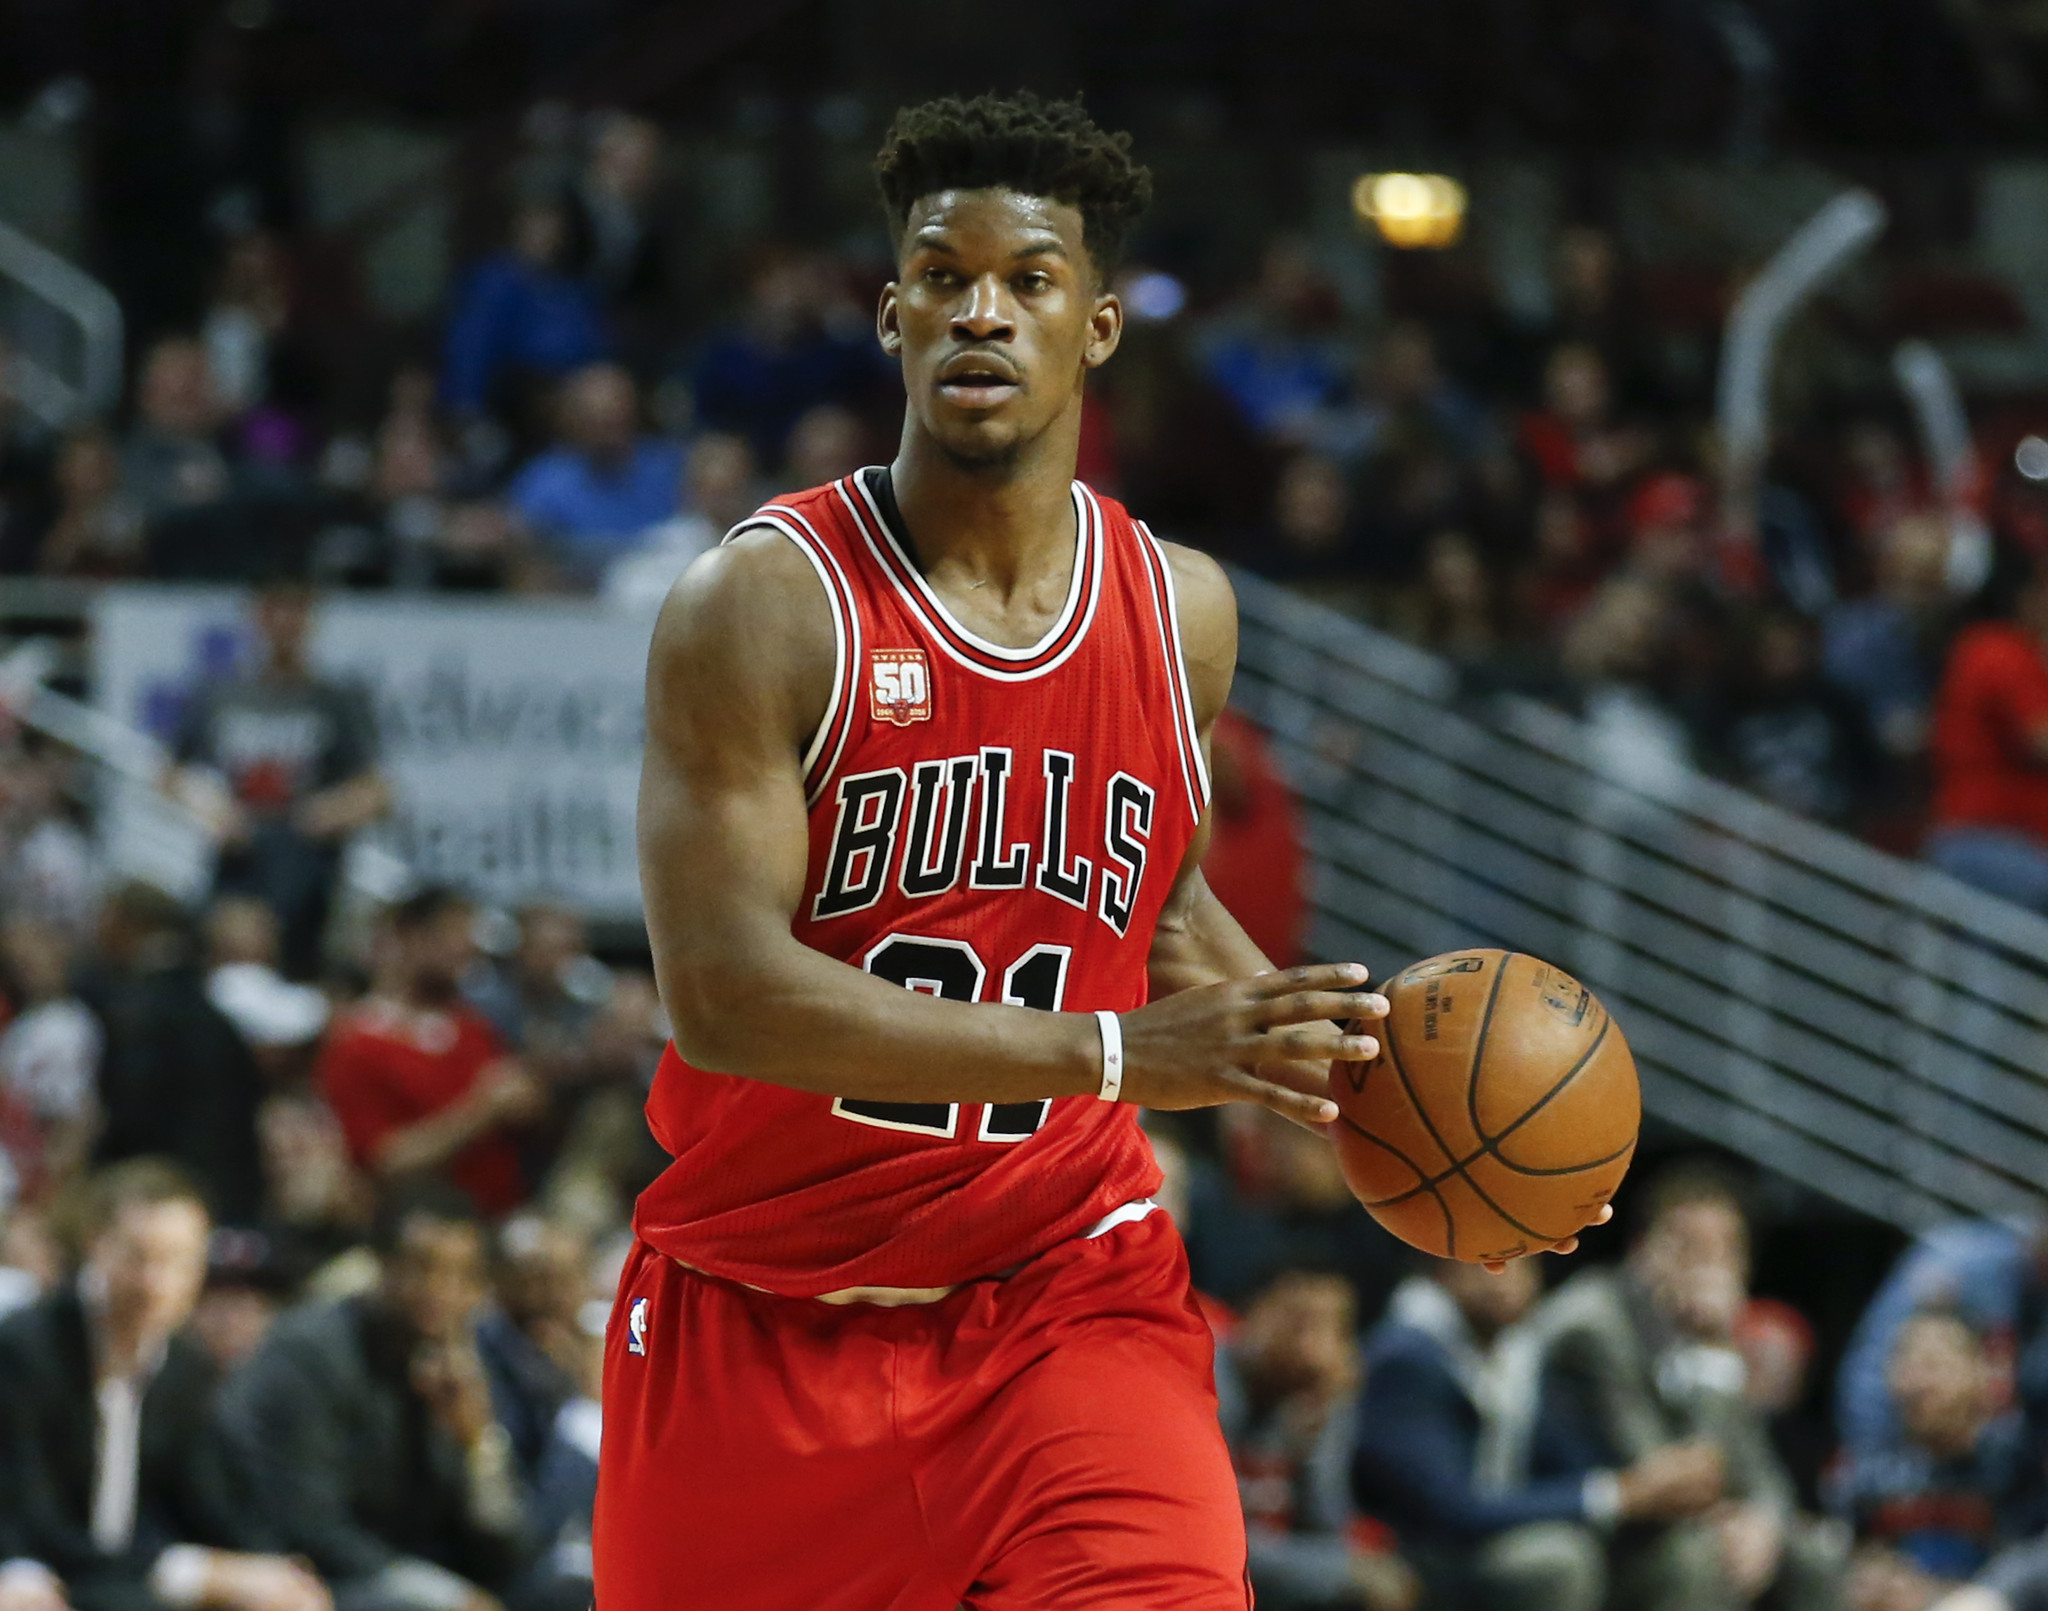 Bulls guard Jimmy Butler has made U.S. Olympic team, according to ...